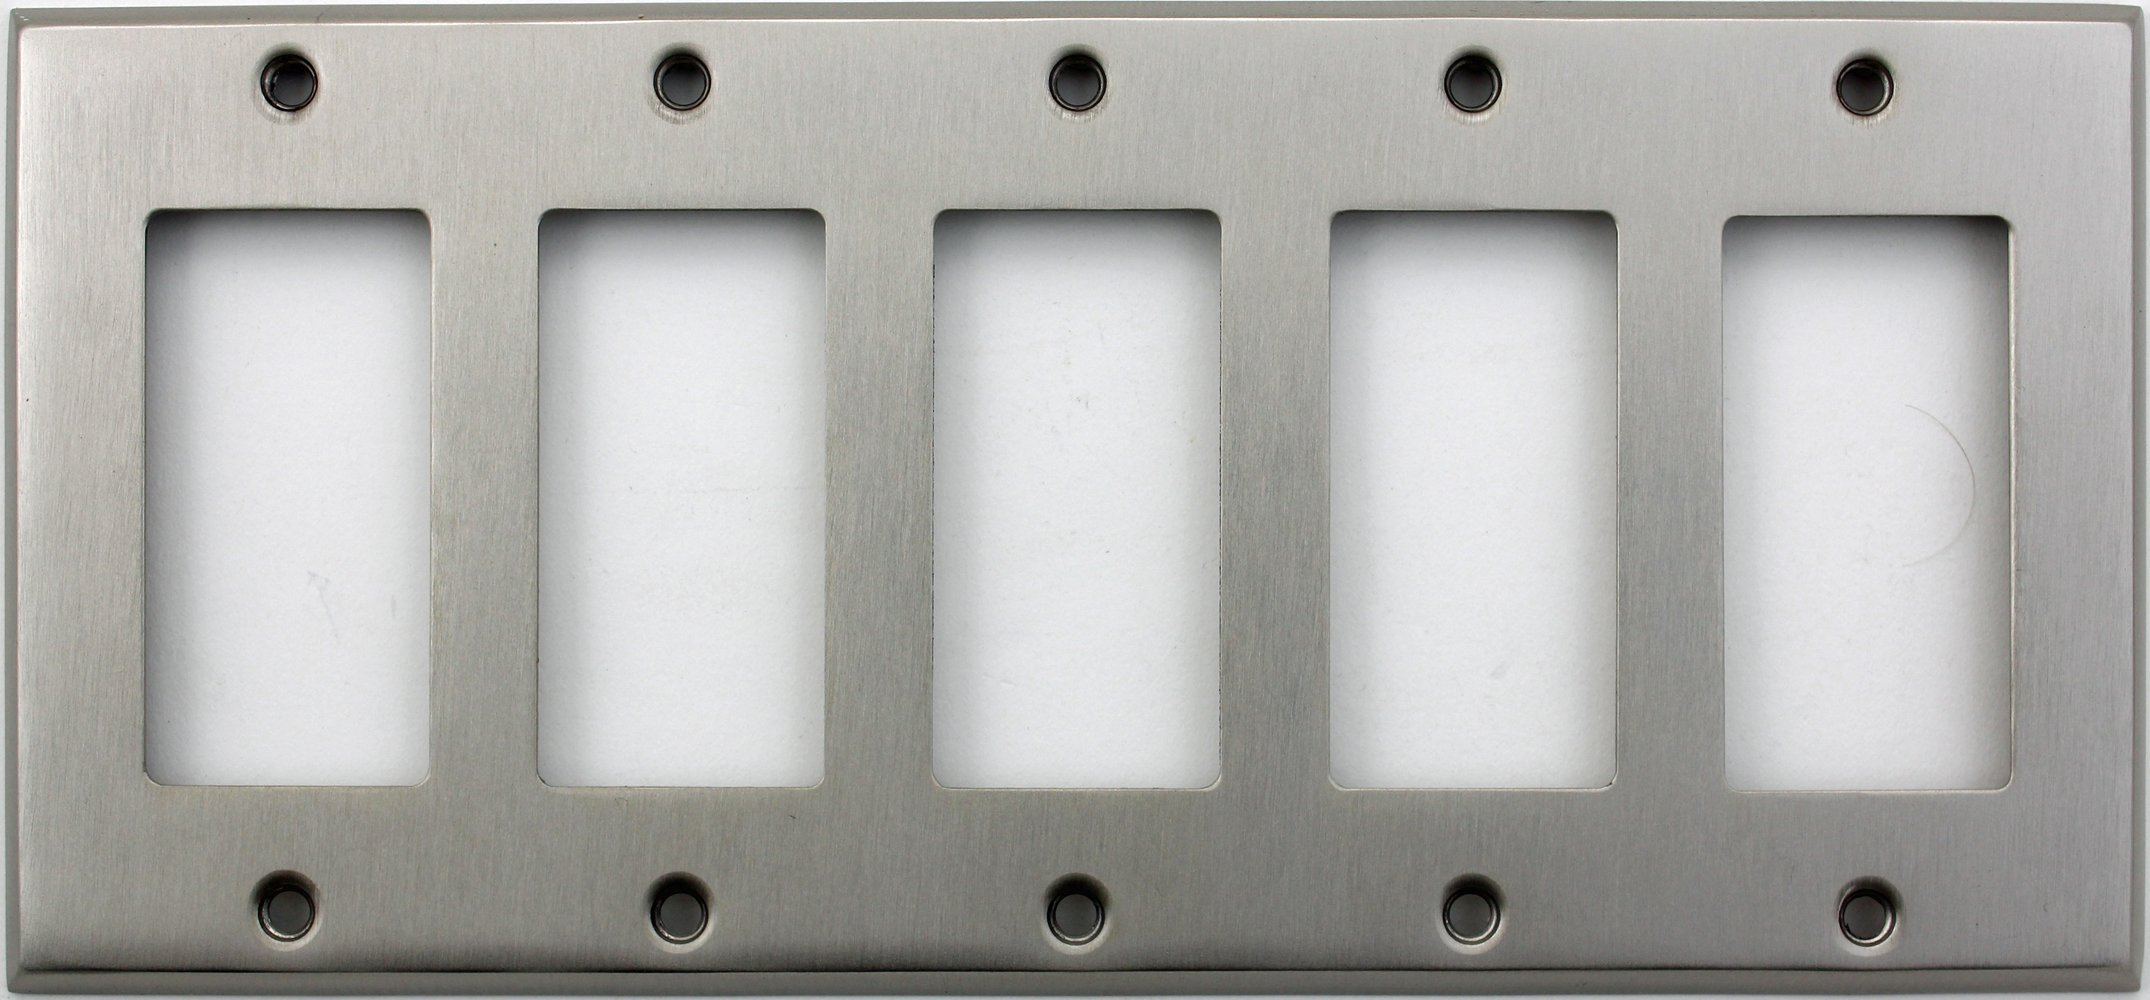 Classic Accents Stamped Steel Satin Nickel Five Gang GFI/Rocker Opening Wall Plate